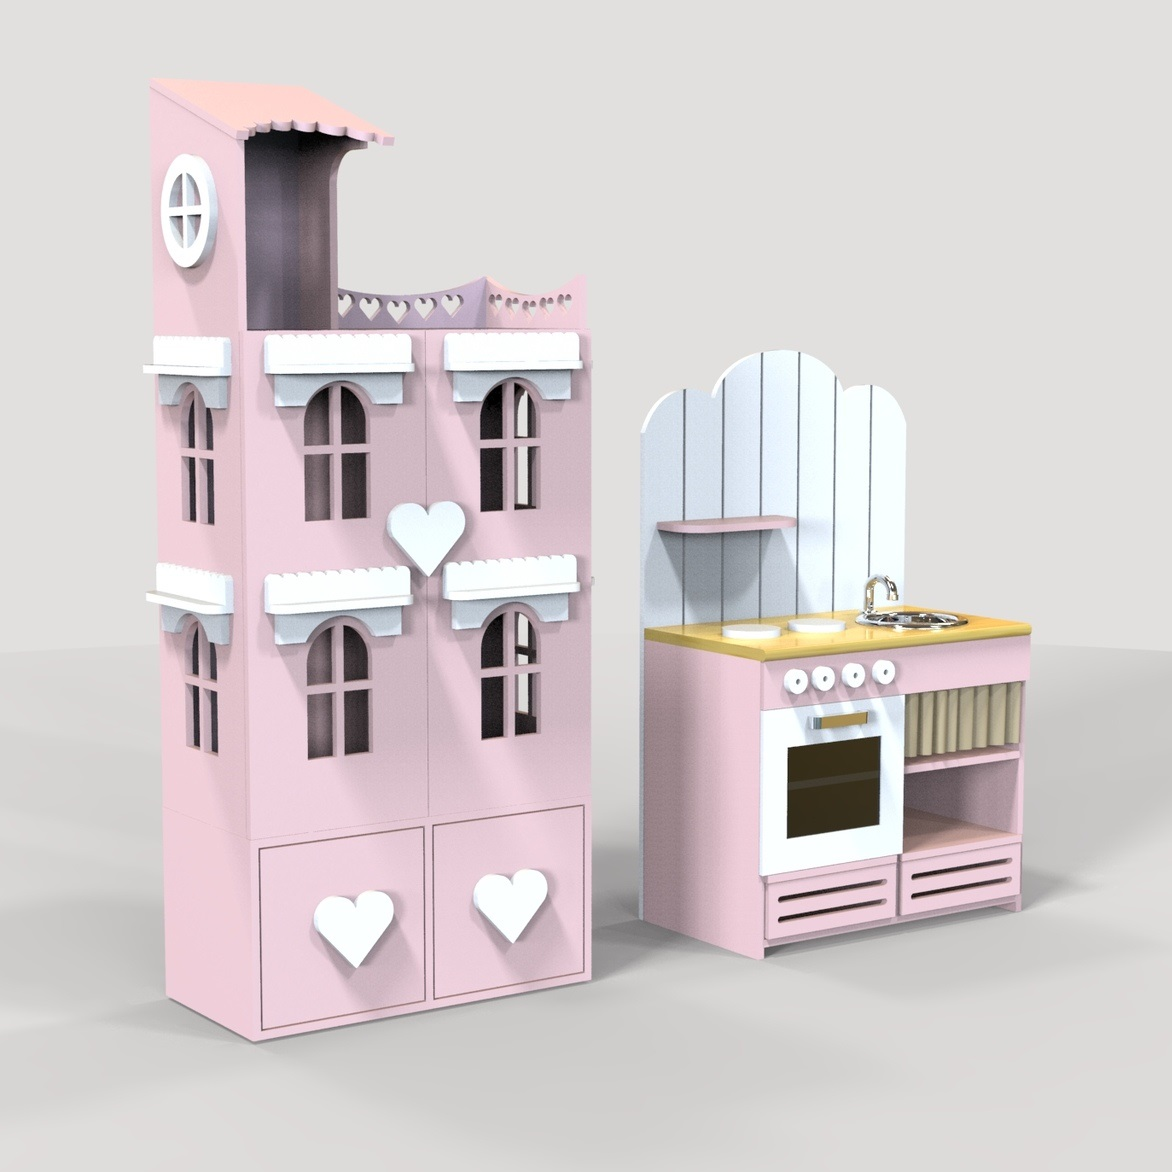 Laser Cut Dollhouse And Mini Oven Toy DXF File